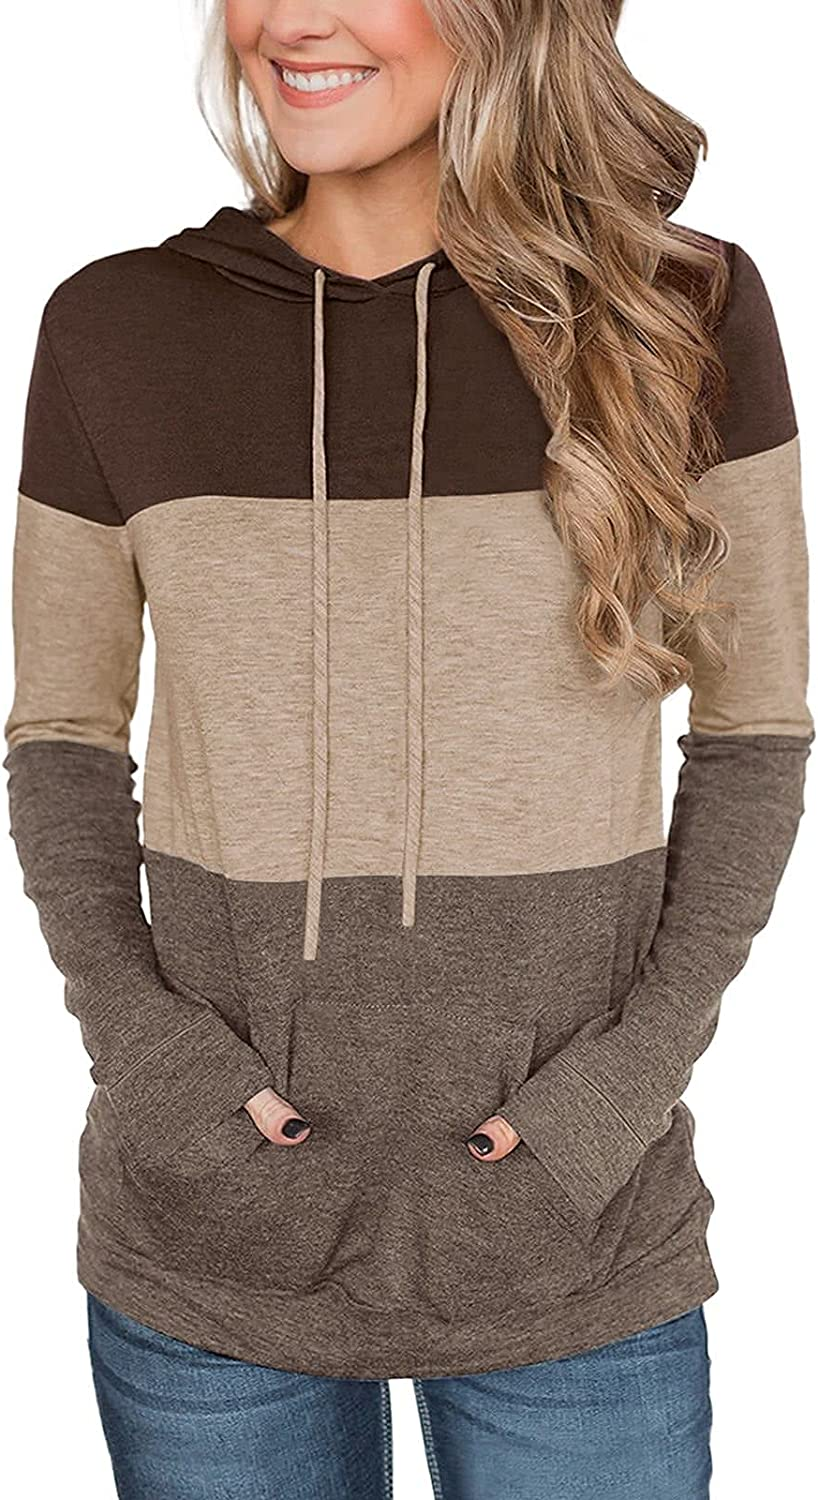 ADREAMLY Womens Round Neck Long Sleeve Tops Color Block Drawstring Hoodie Oversized Pullover Sweatshirt With Pockets